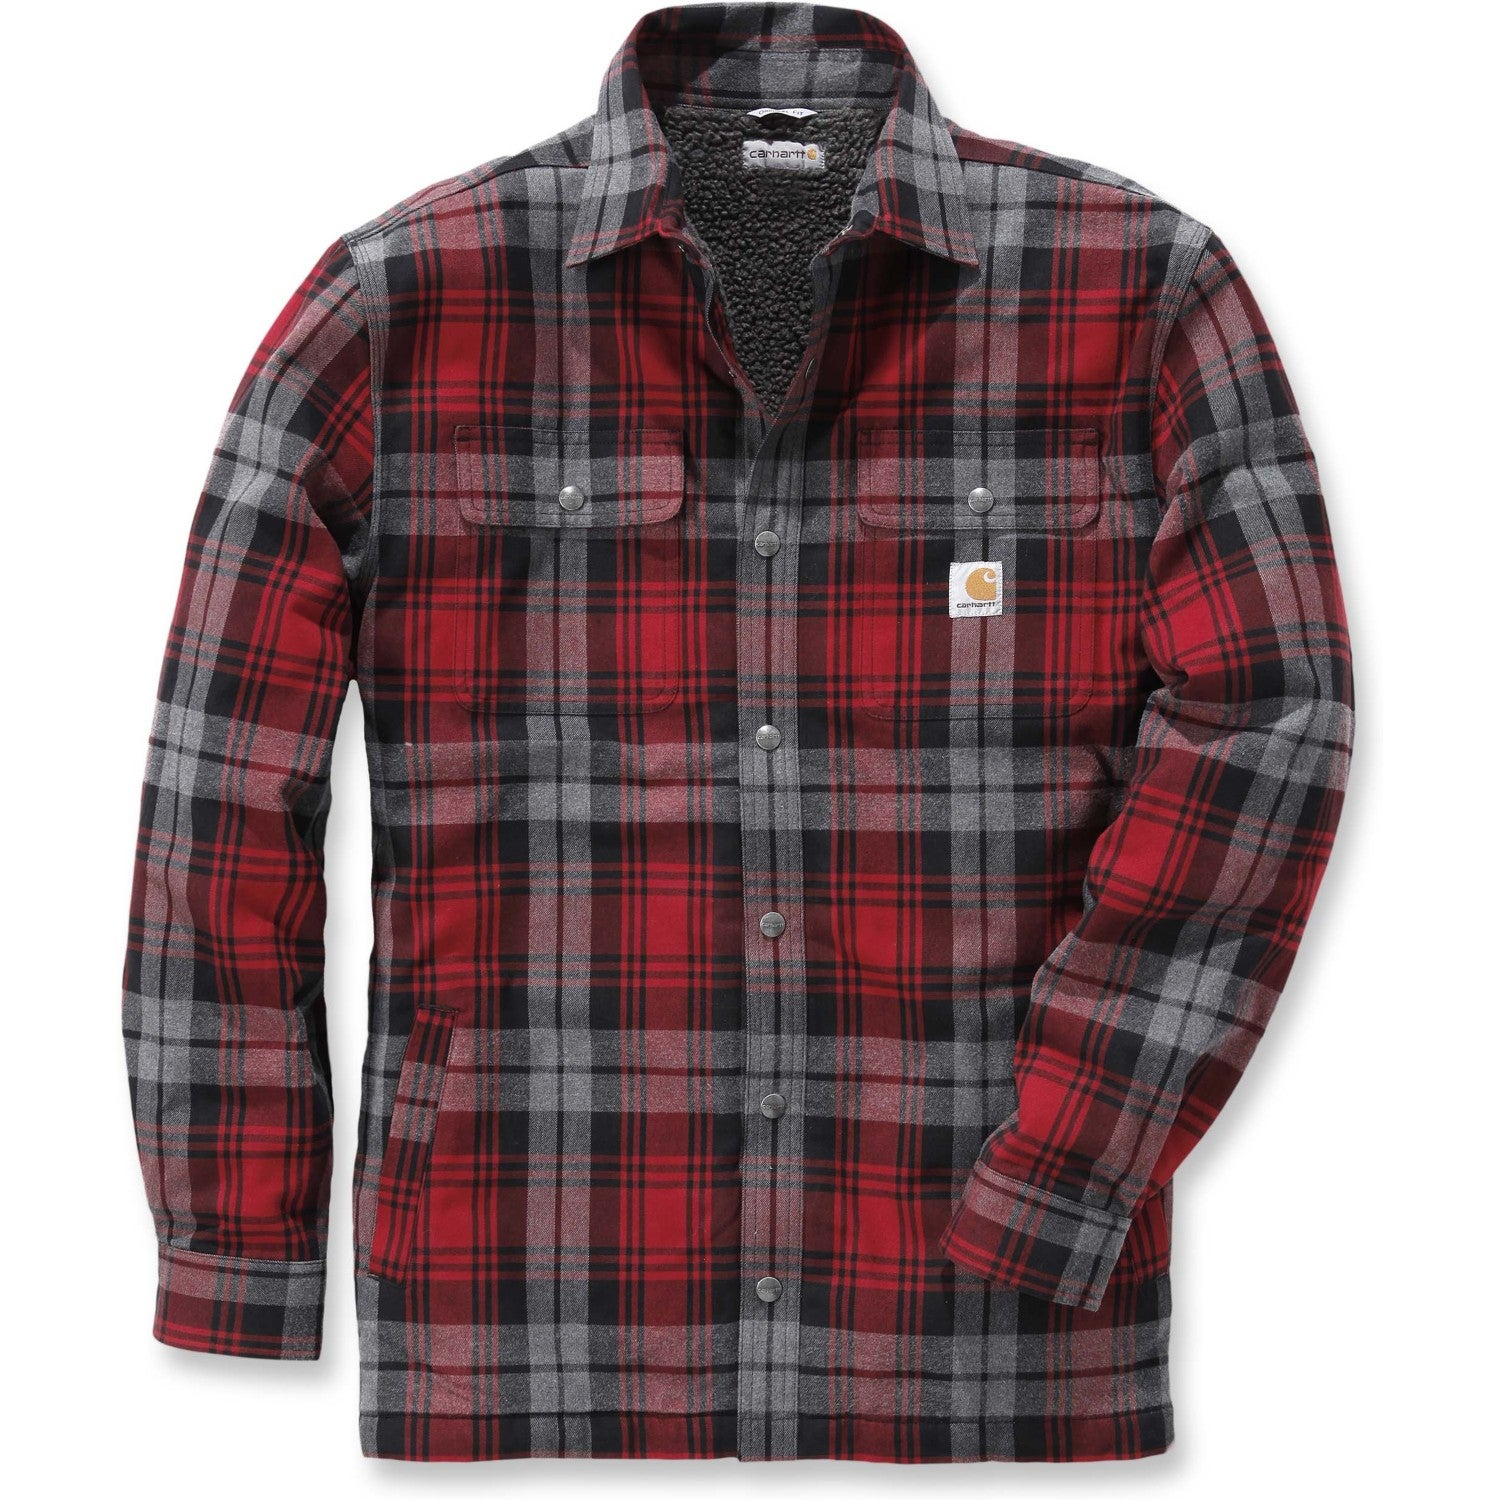 Carhartt Hubbard Sherpa Lined Long Sleeve Shirt